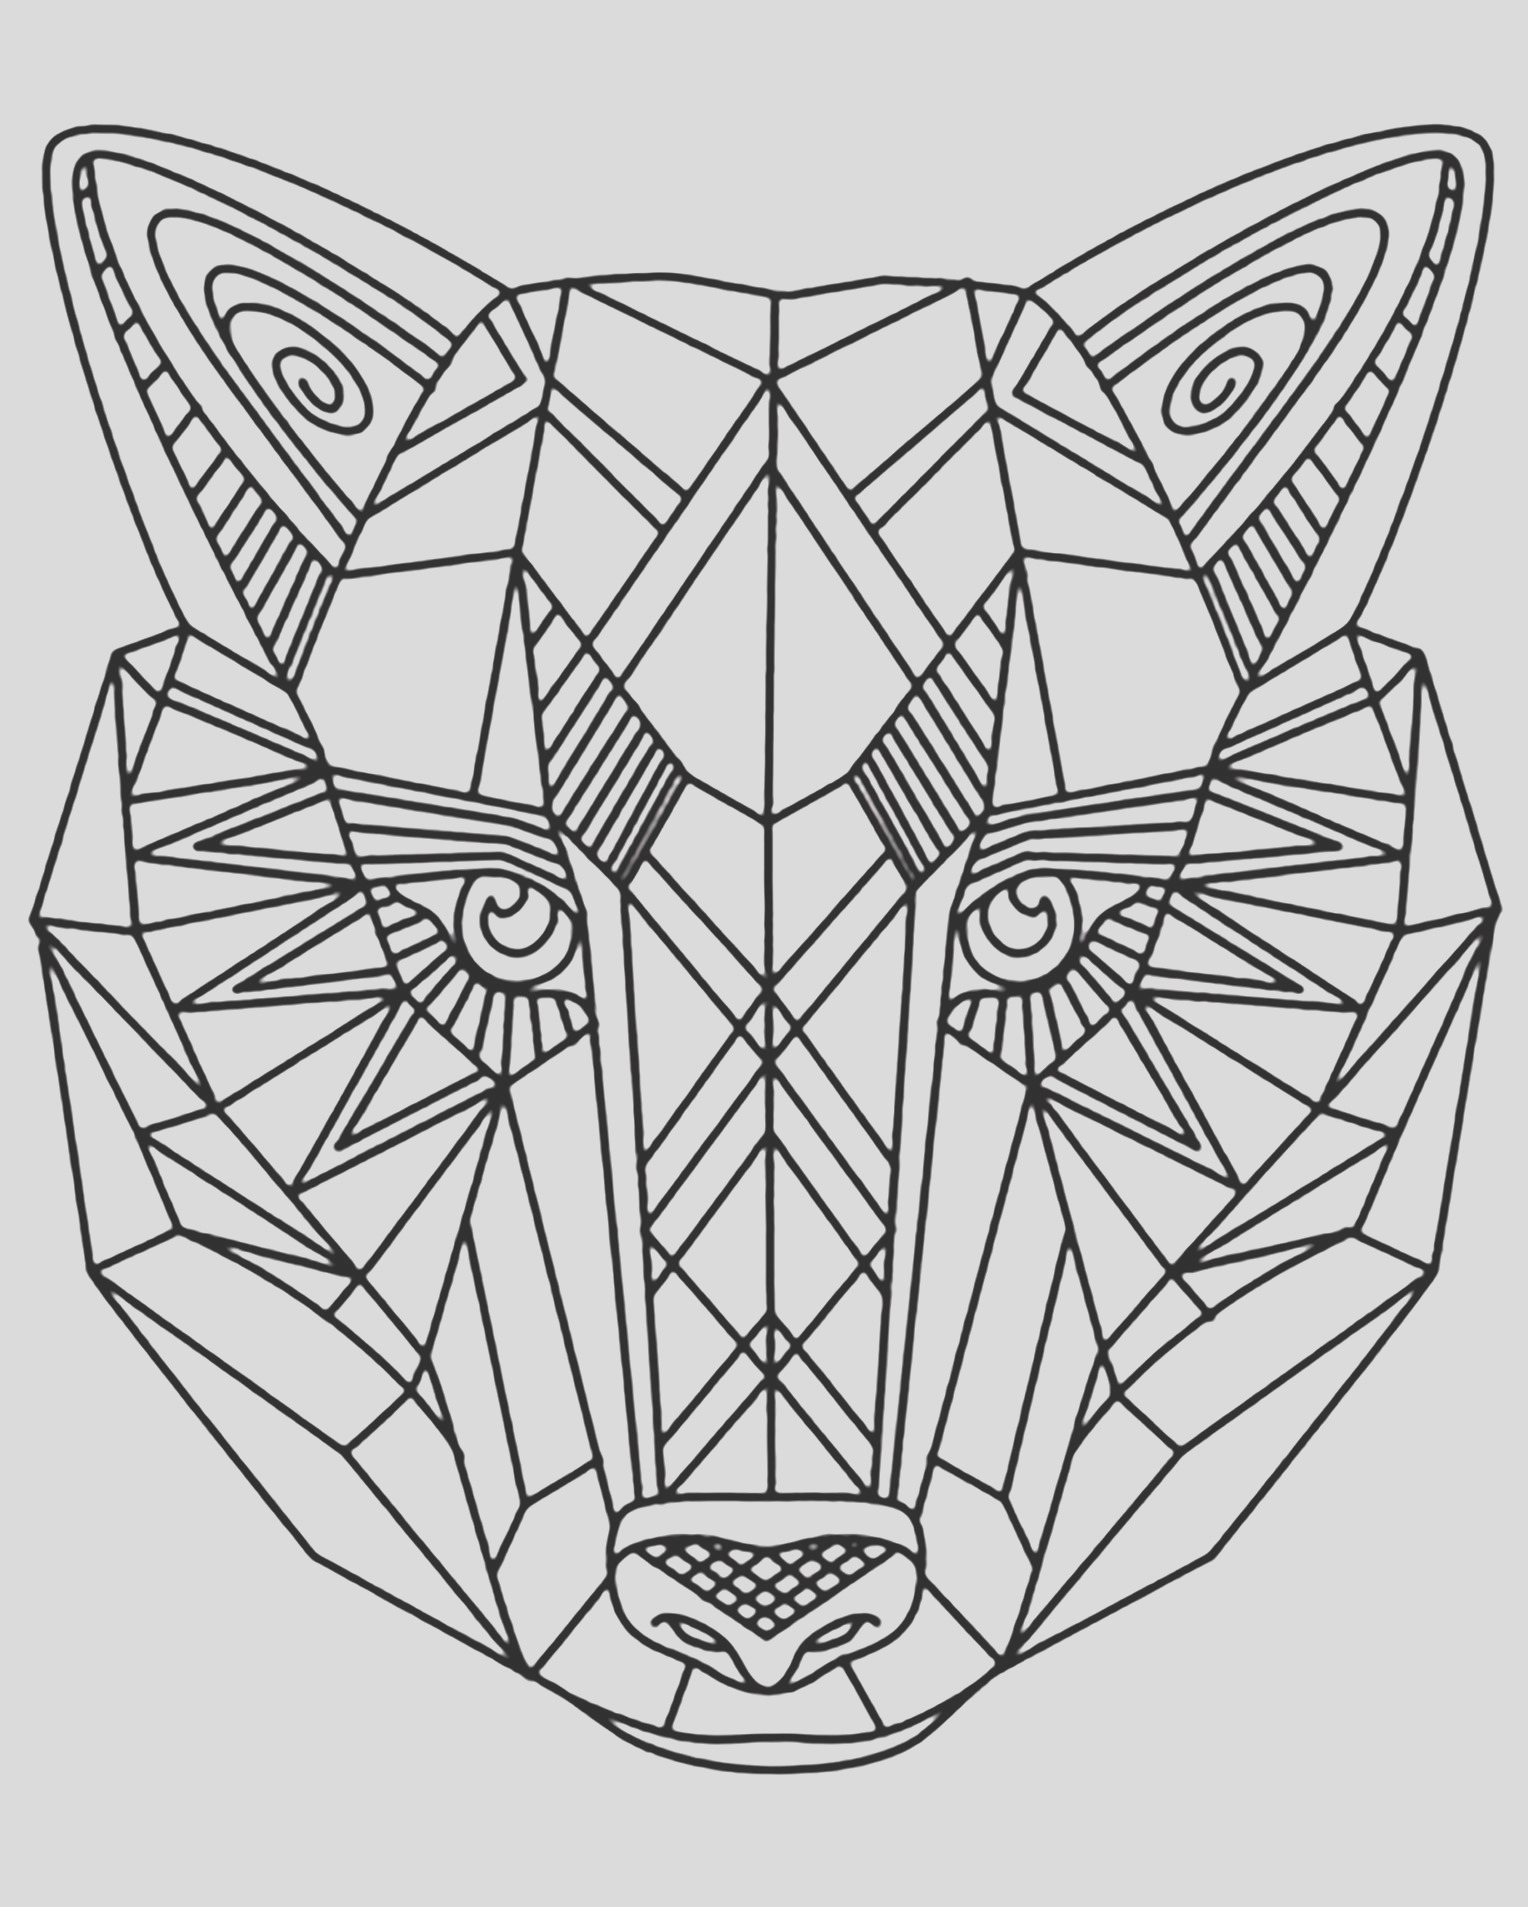 2 image=animals coloring page wolf 1 1